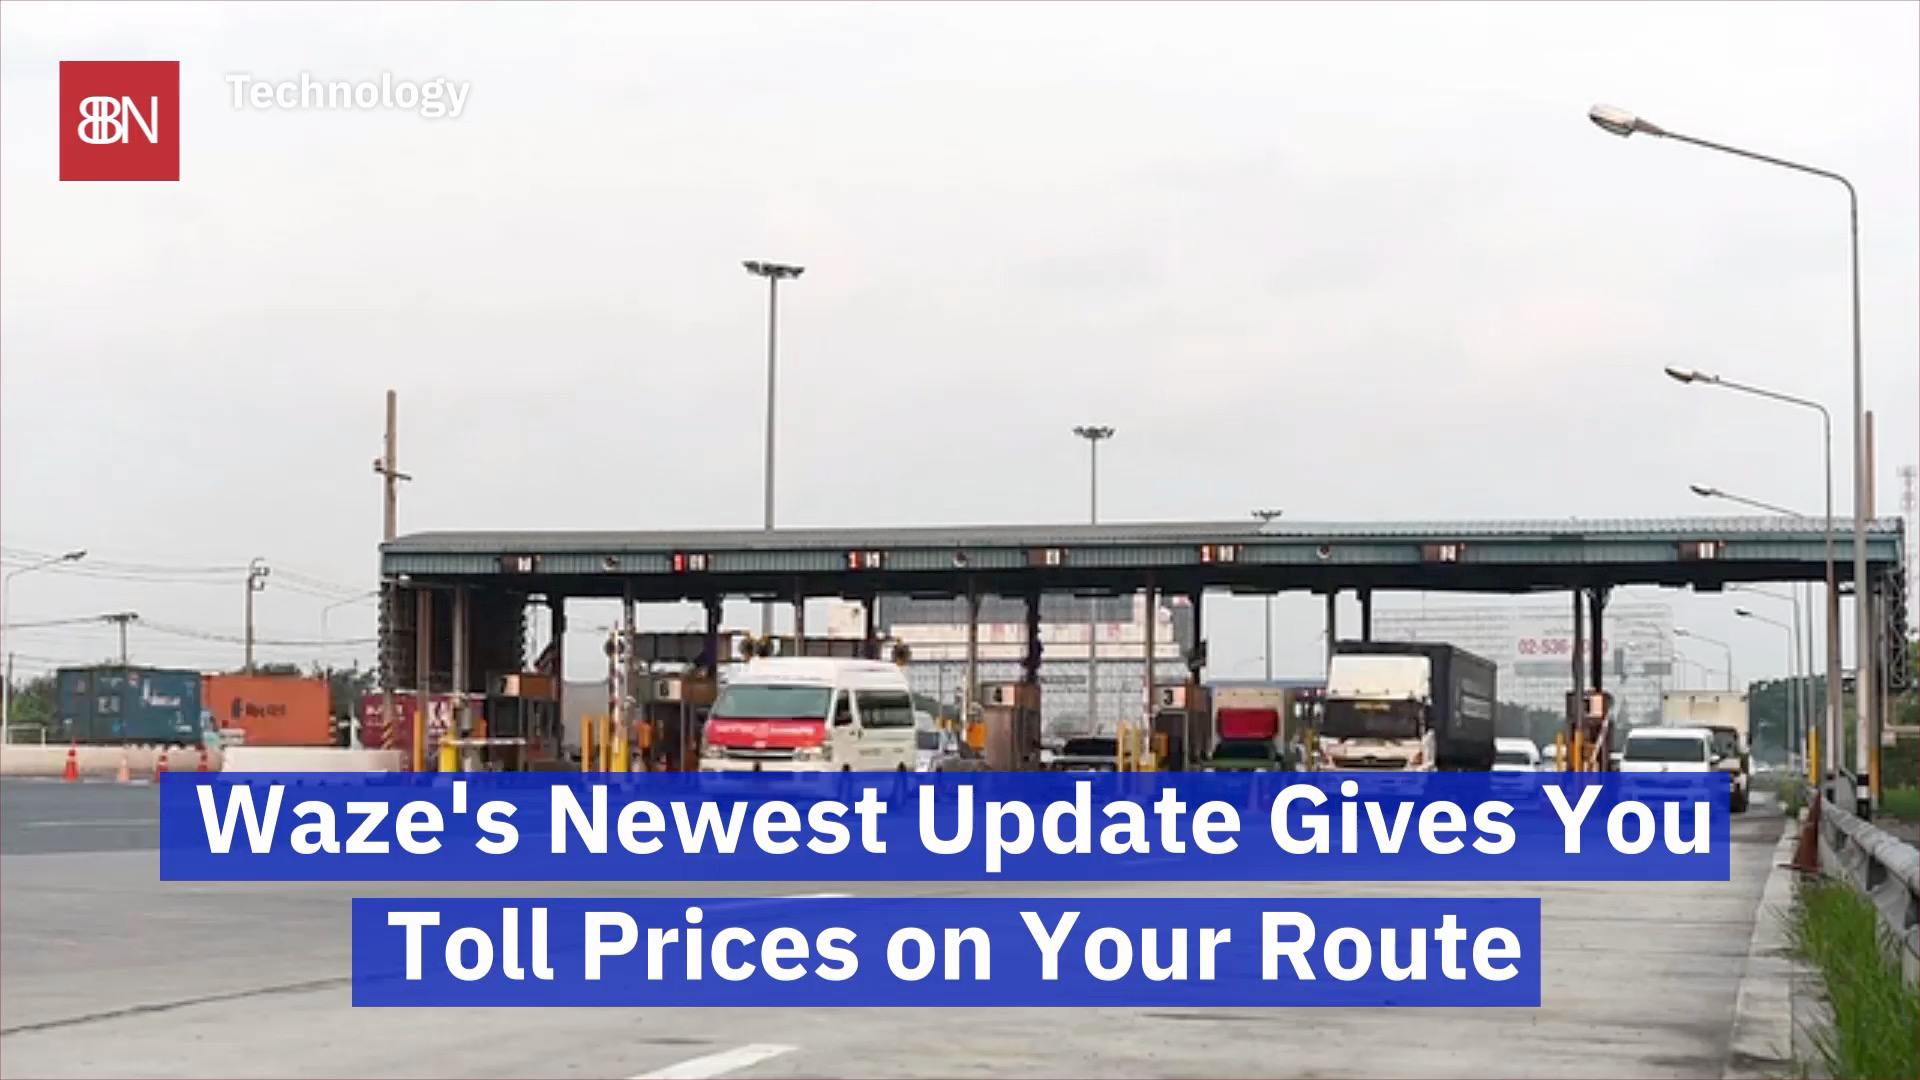 Watch Toll Prices In Real Time With Waze